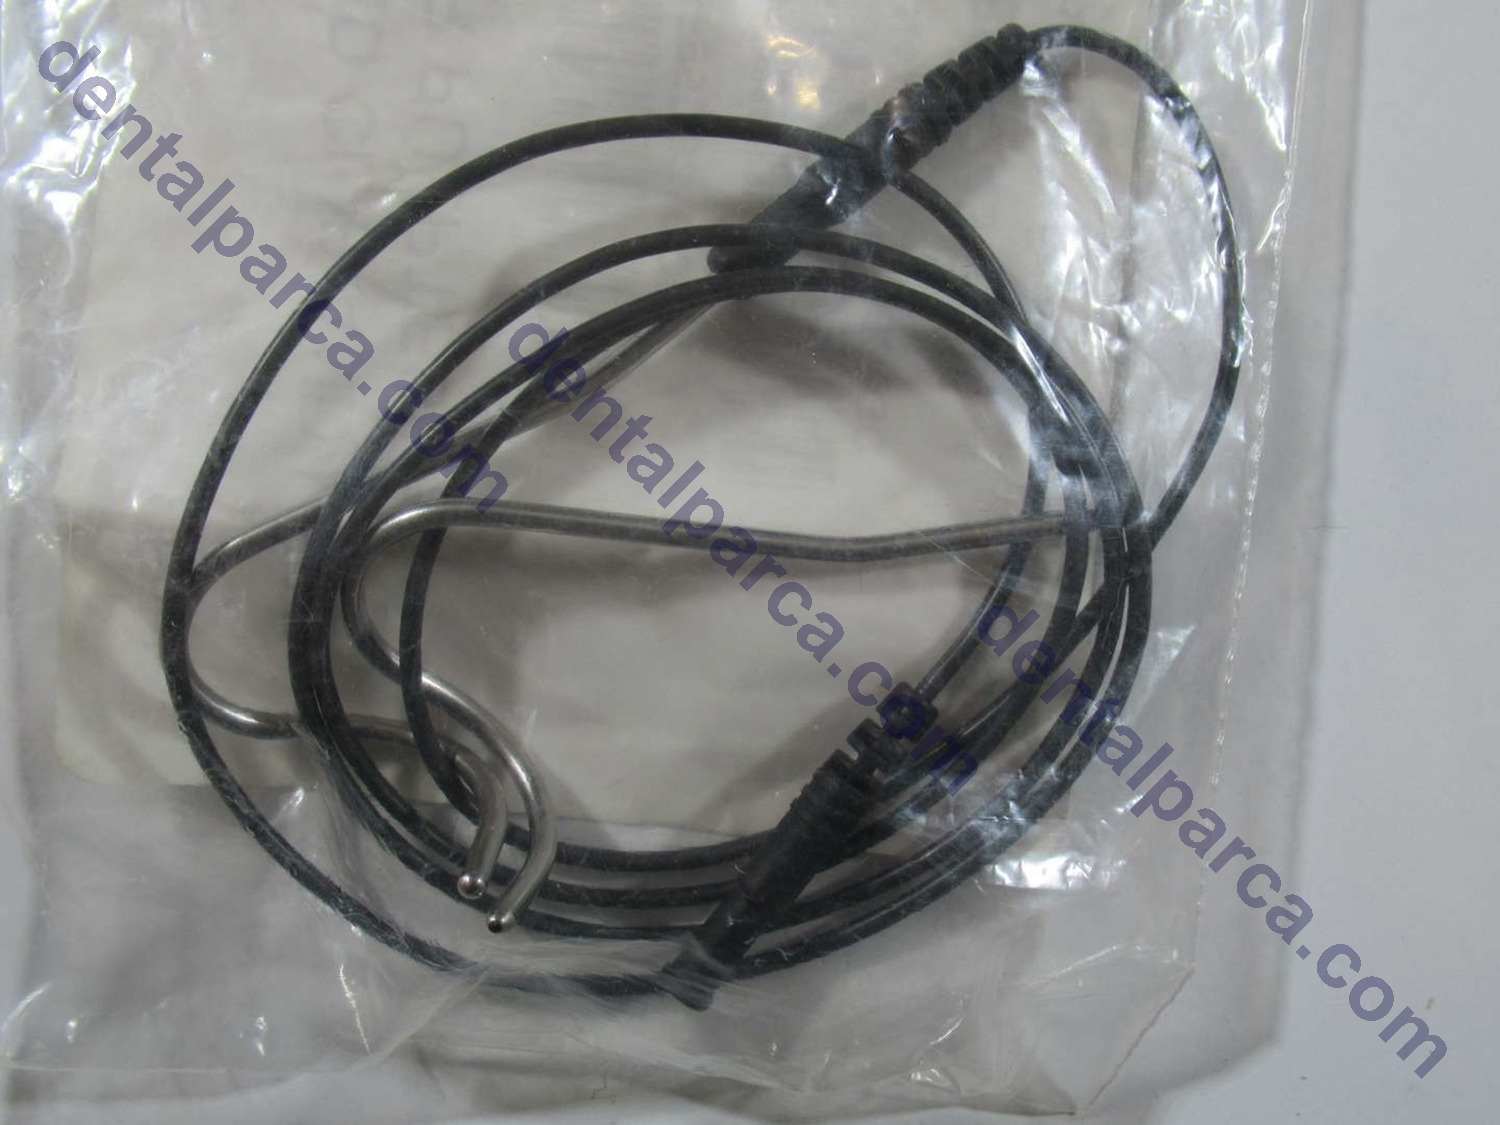 PARKELL NEW GROUND CLIP & LEAD WIRE FOR  GENTLE PU resmi